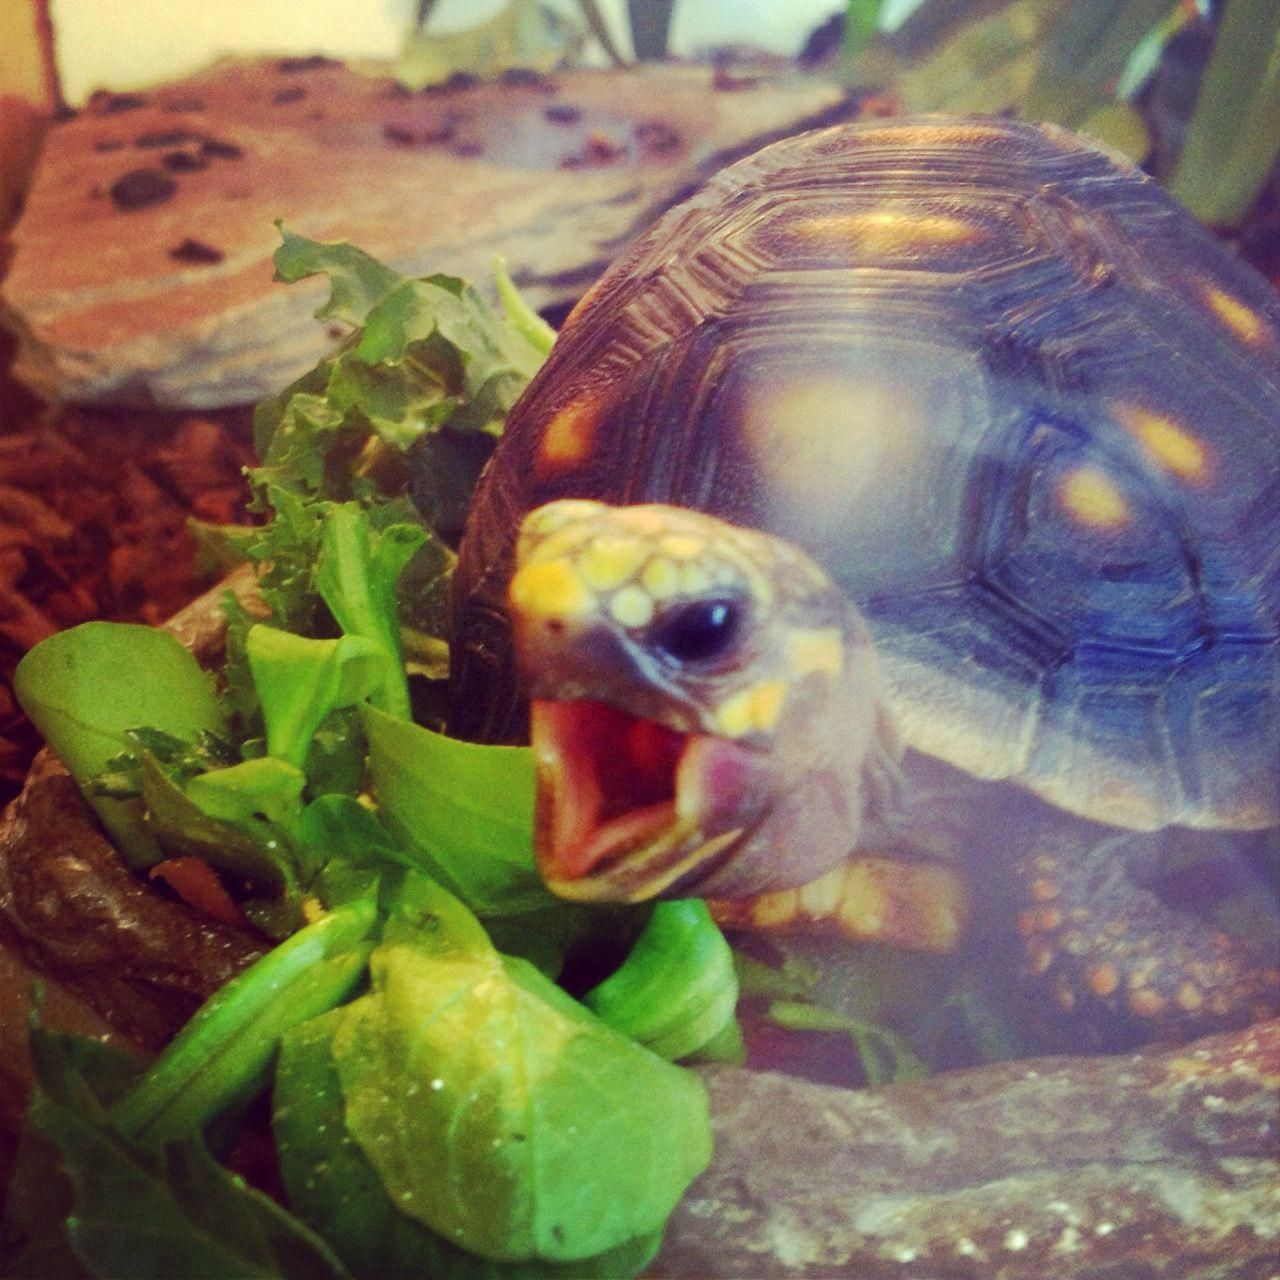 Redfooted tortoise taking a big bite at Northampton